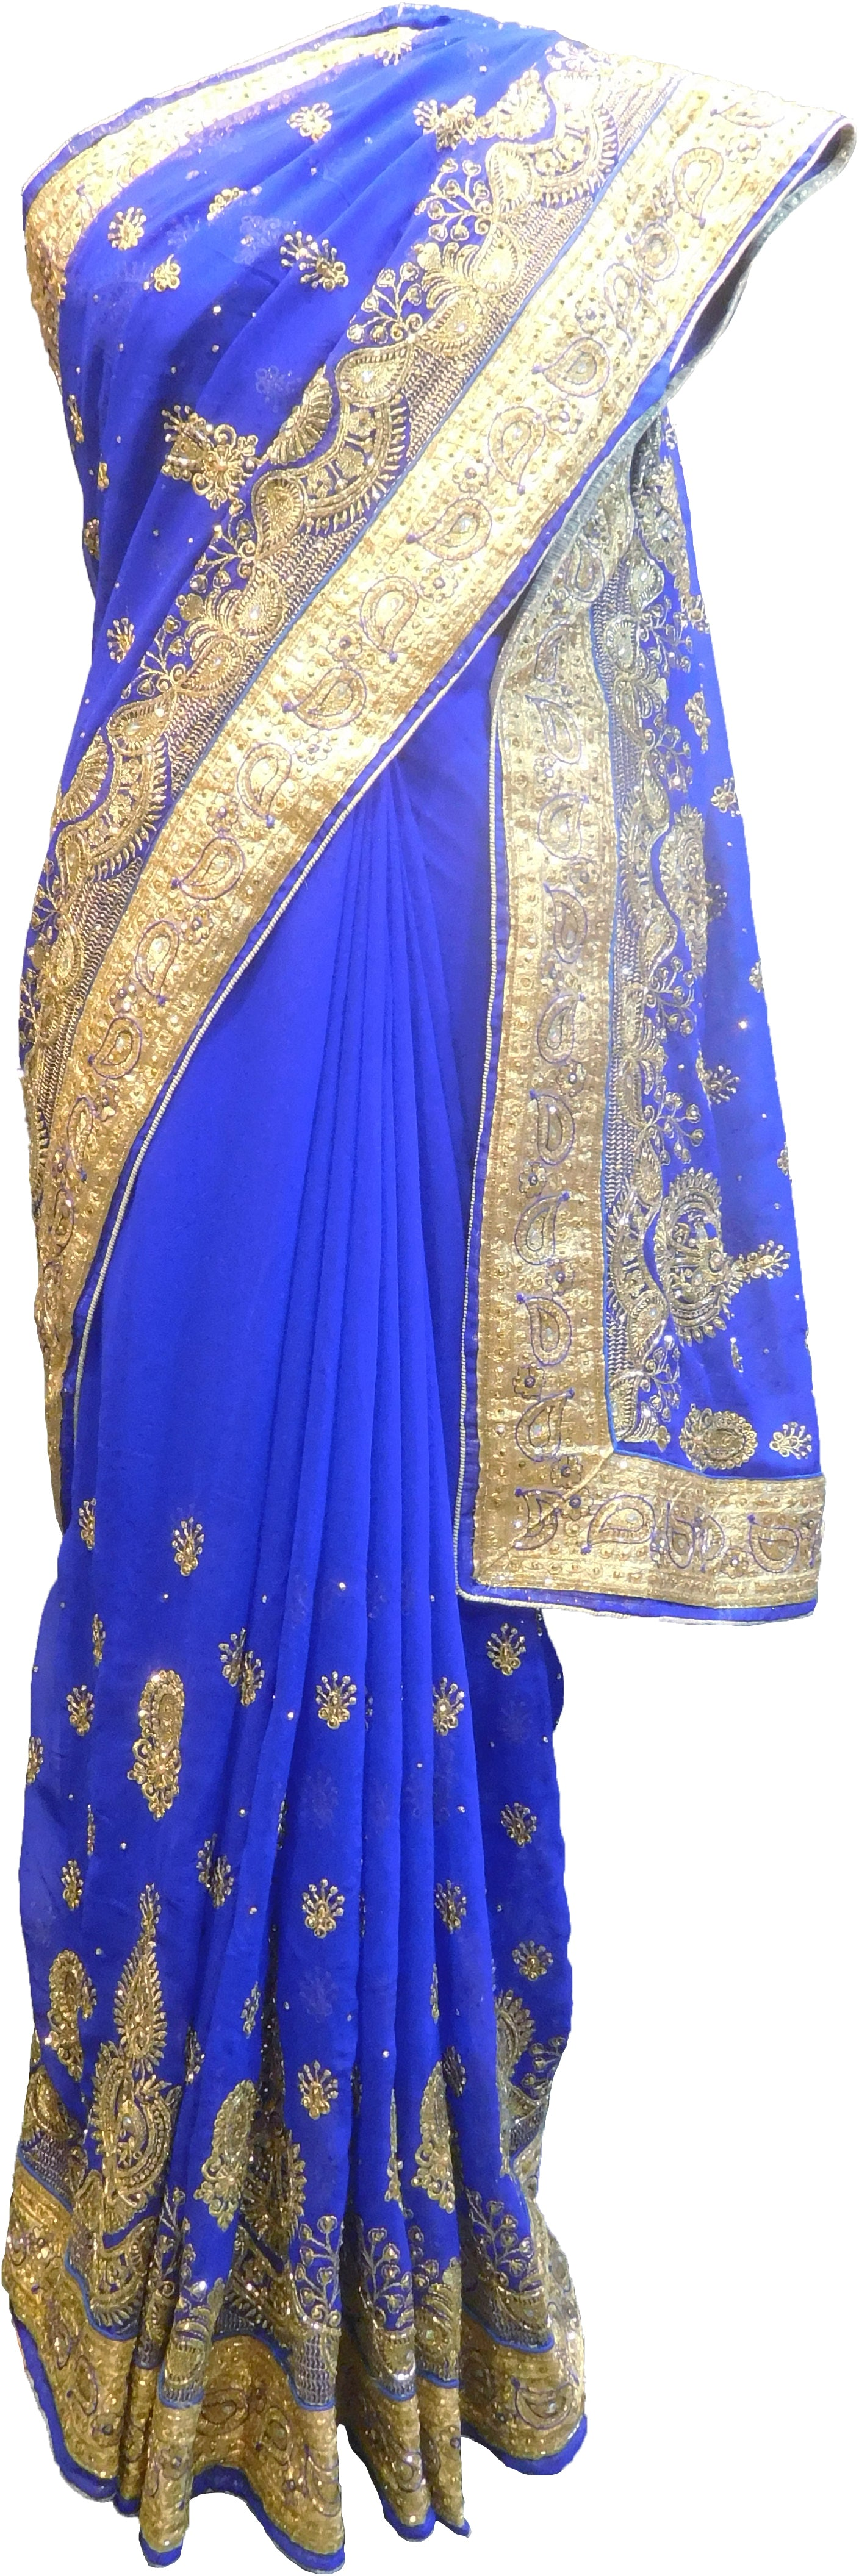 SMSAREE Blue Designer Wedding Partywear Georgette Stone Thread & Zari Hand Embroidery Work Bridal Saree Sari With Blouse Piece F374